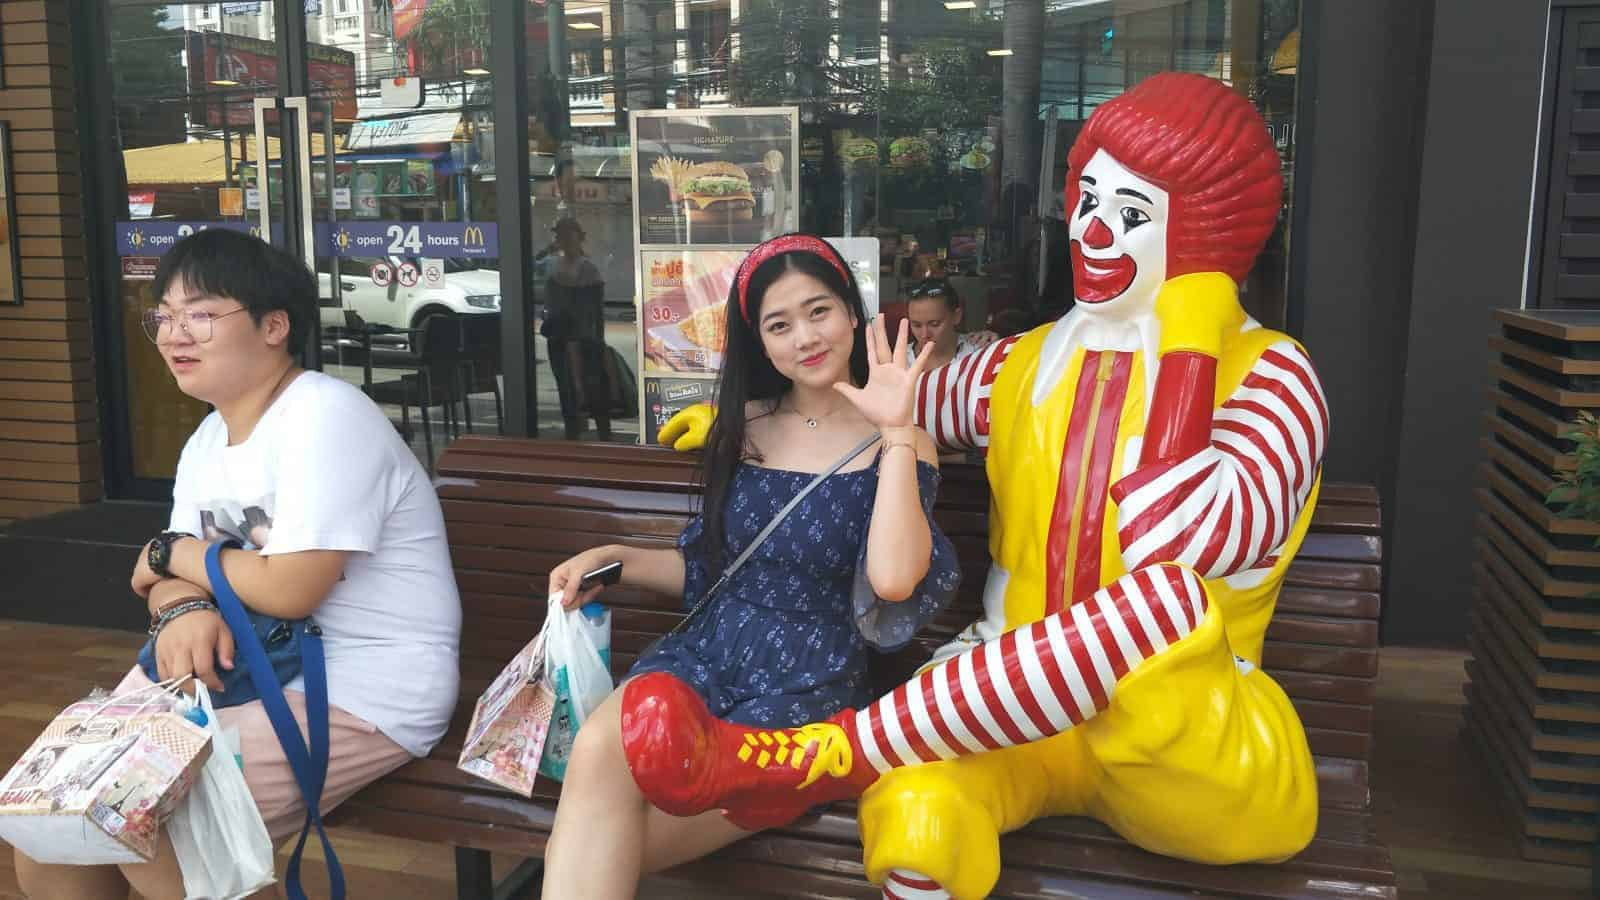 A Chinese Tourist poses with Ronald McDonald in Chiang Mai.